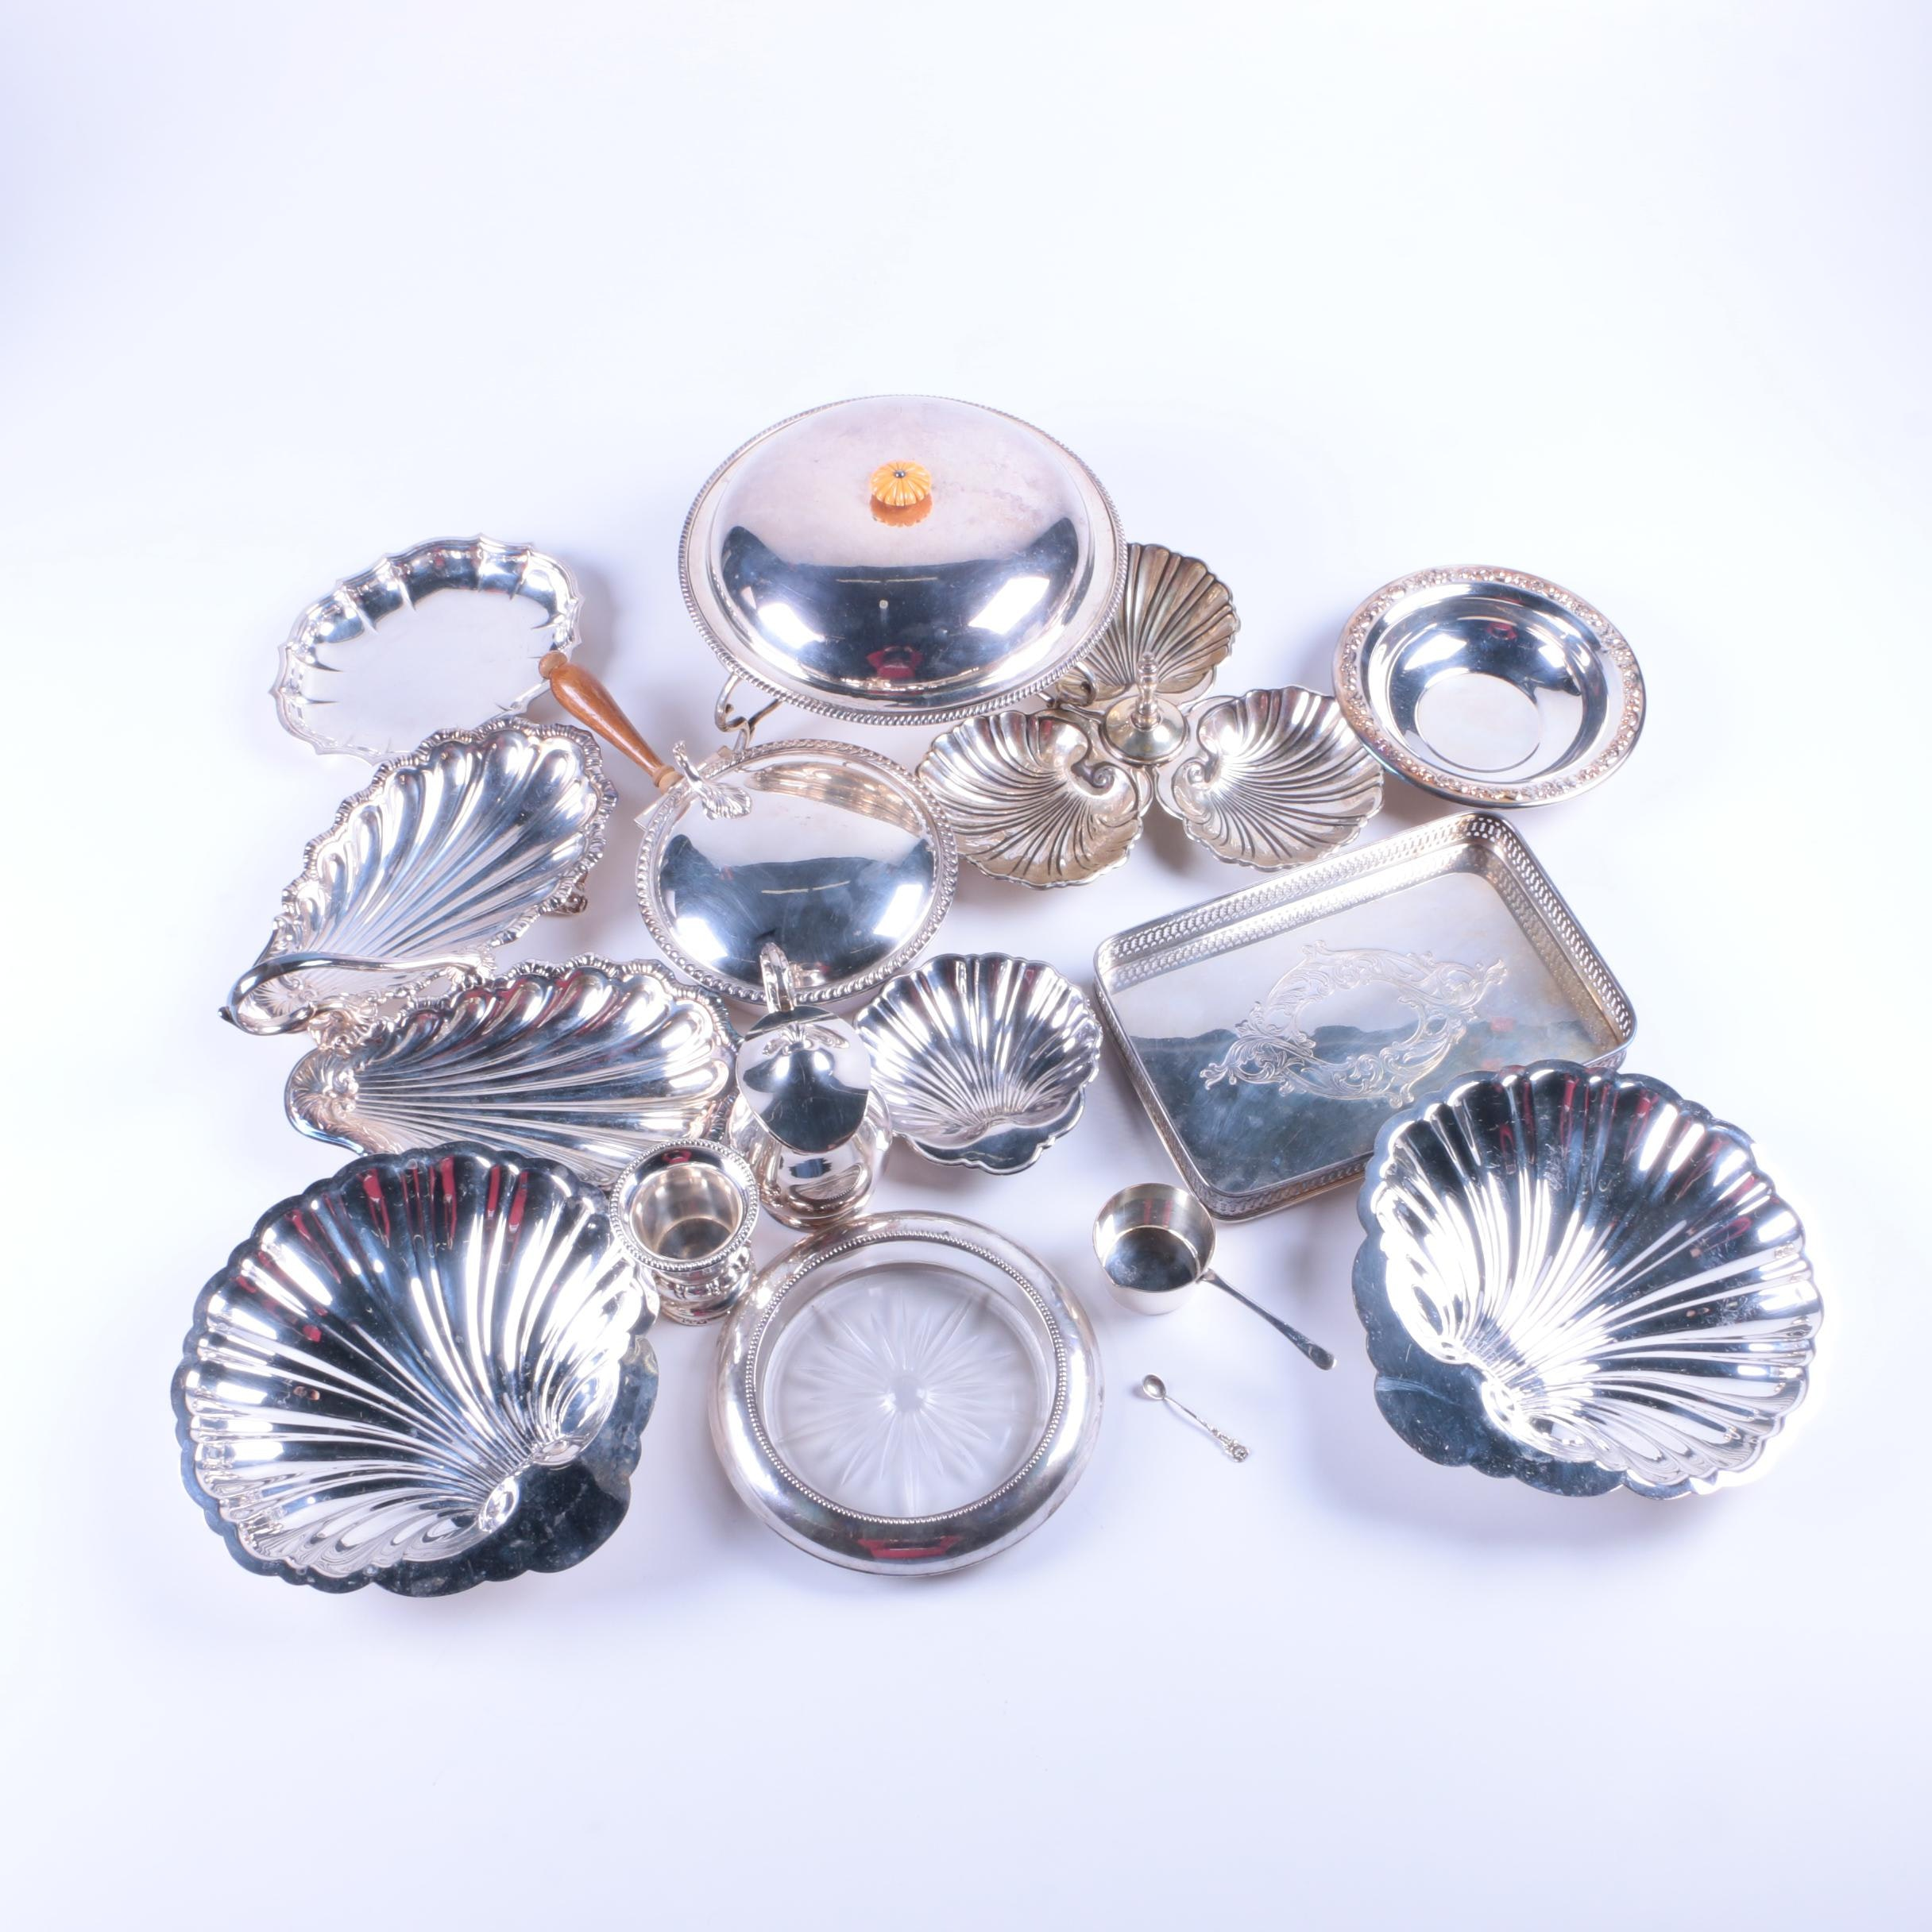 835 Silver Spoon, Frank M. Whiting Sterling and Glass Coaster and More